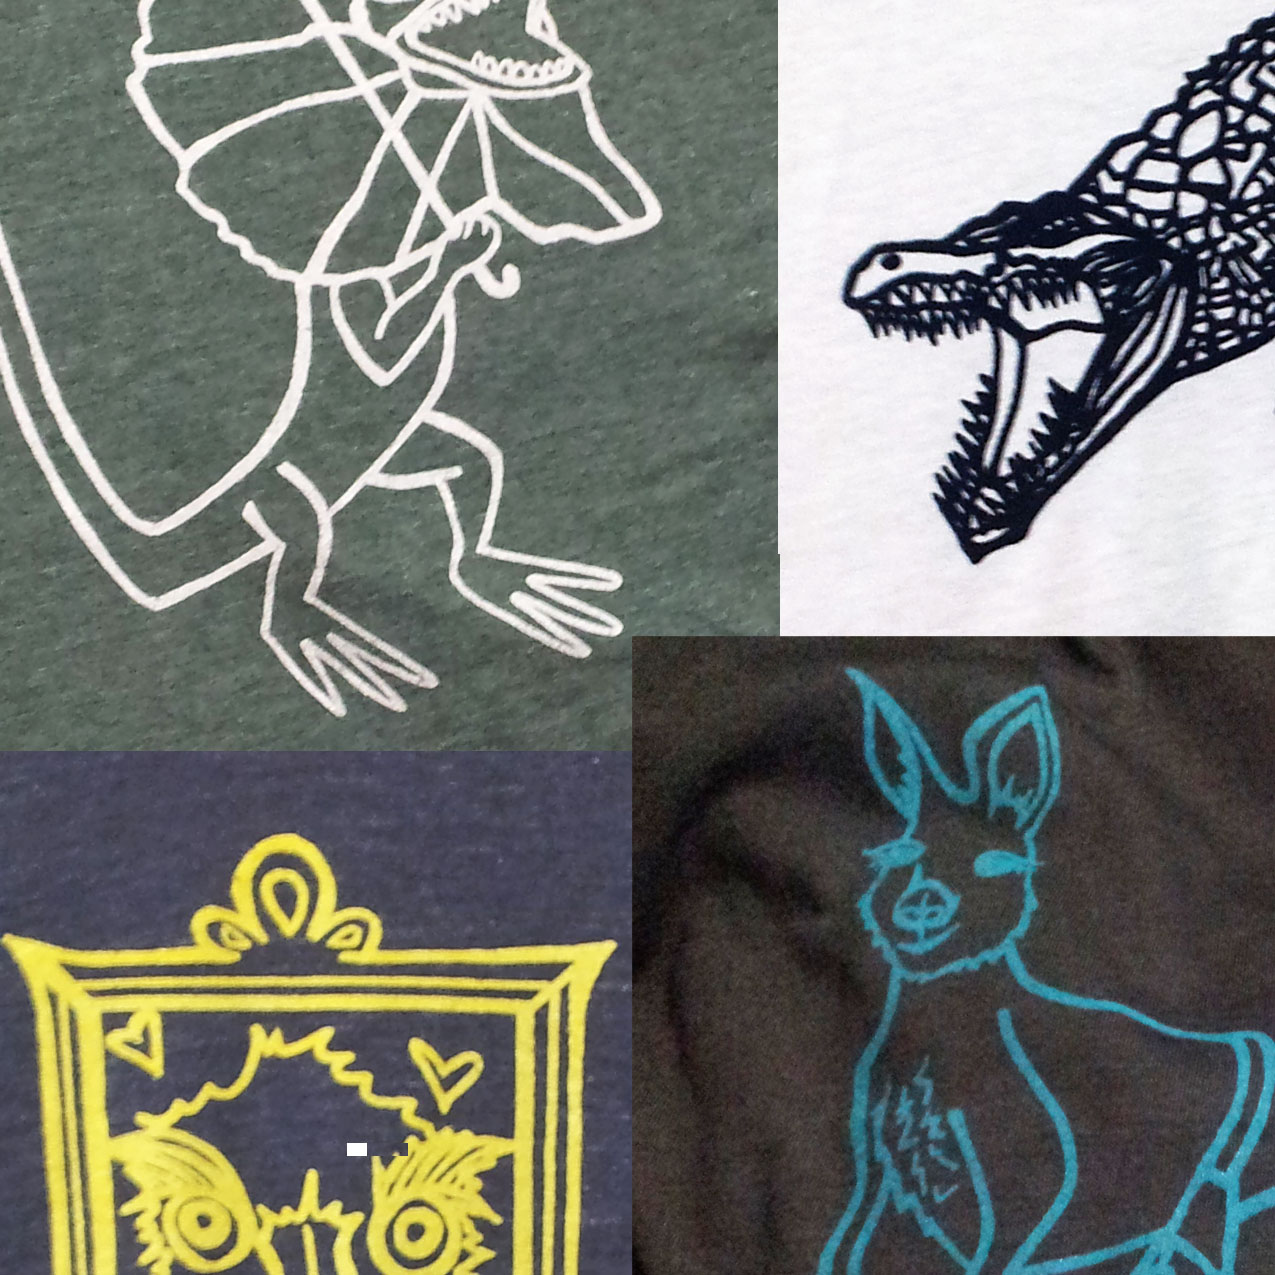 Here is a sneak peek of our new designs!